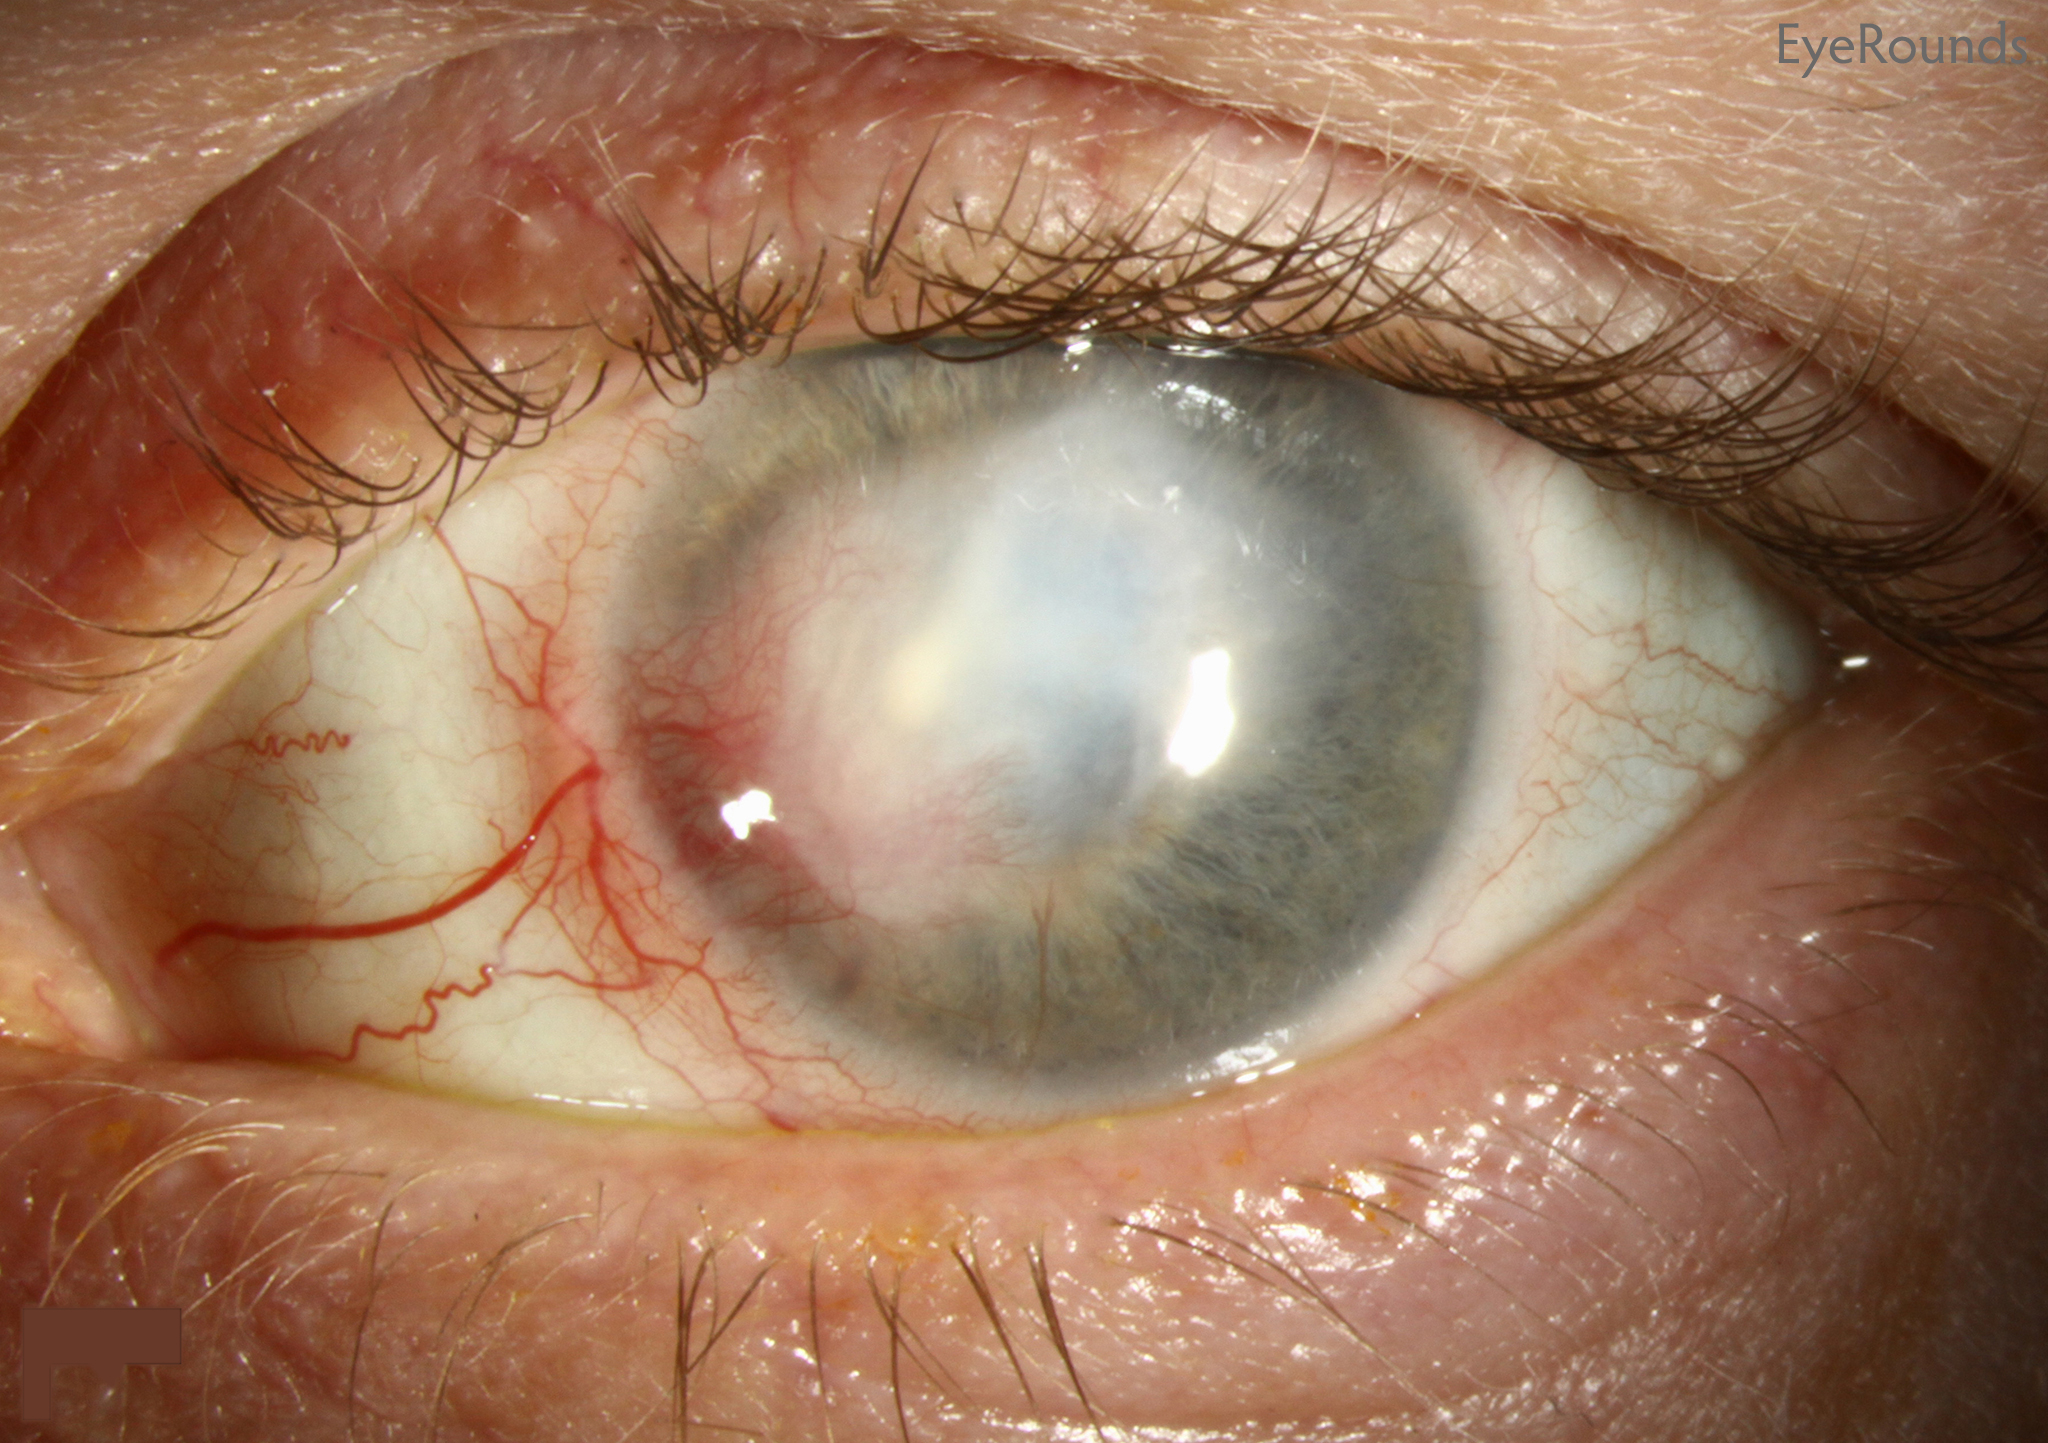 Herpetic keratitis: causes and treatment 81